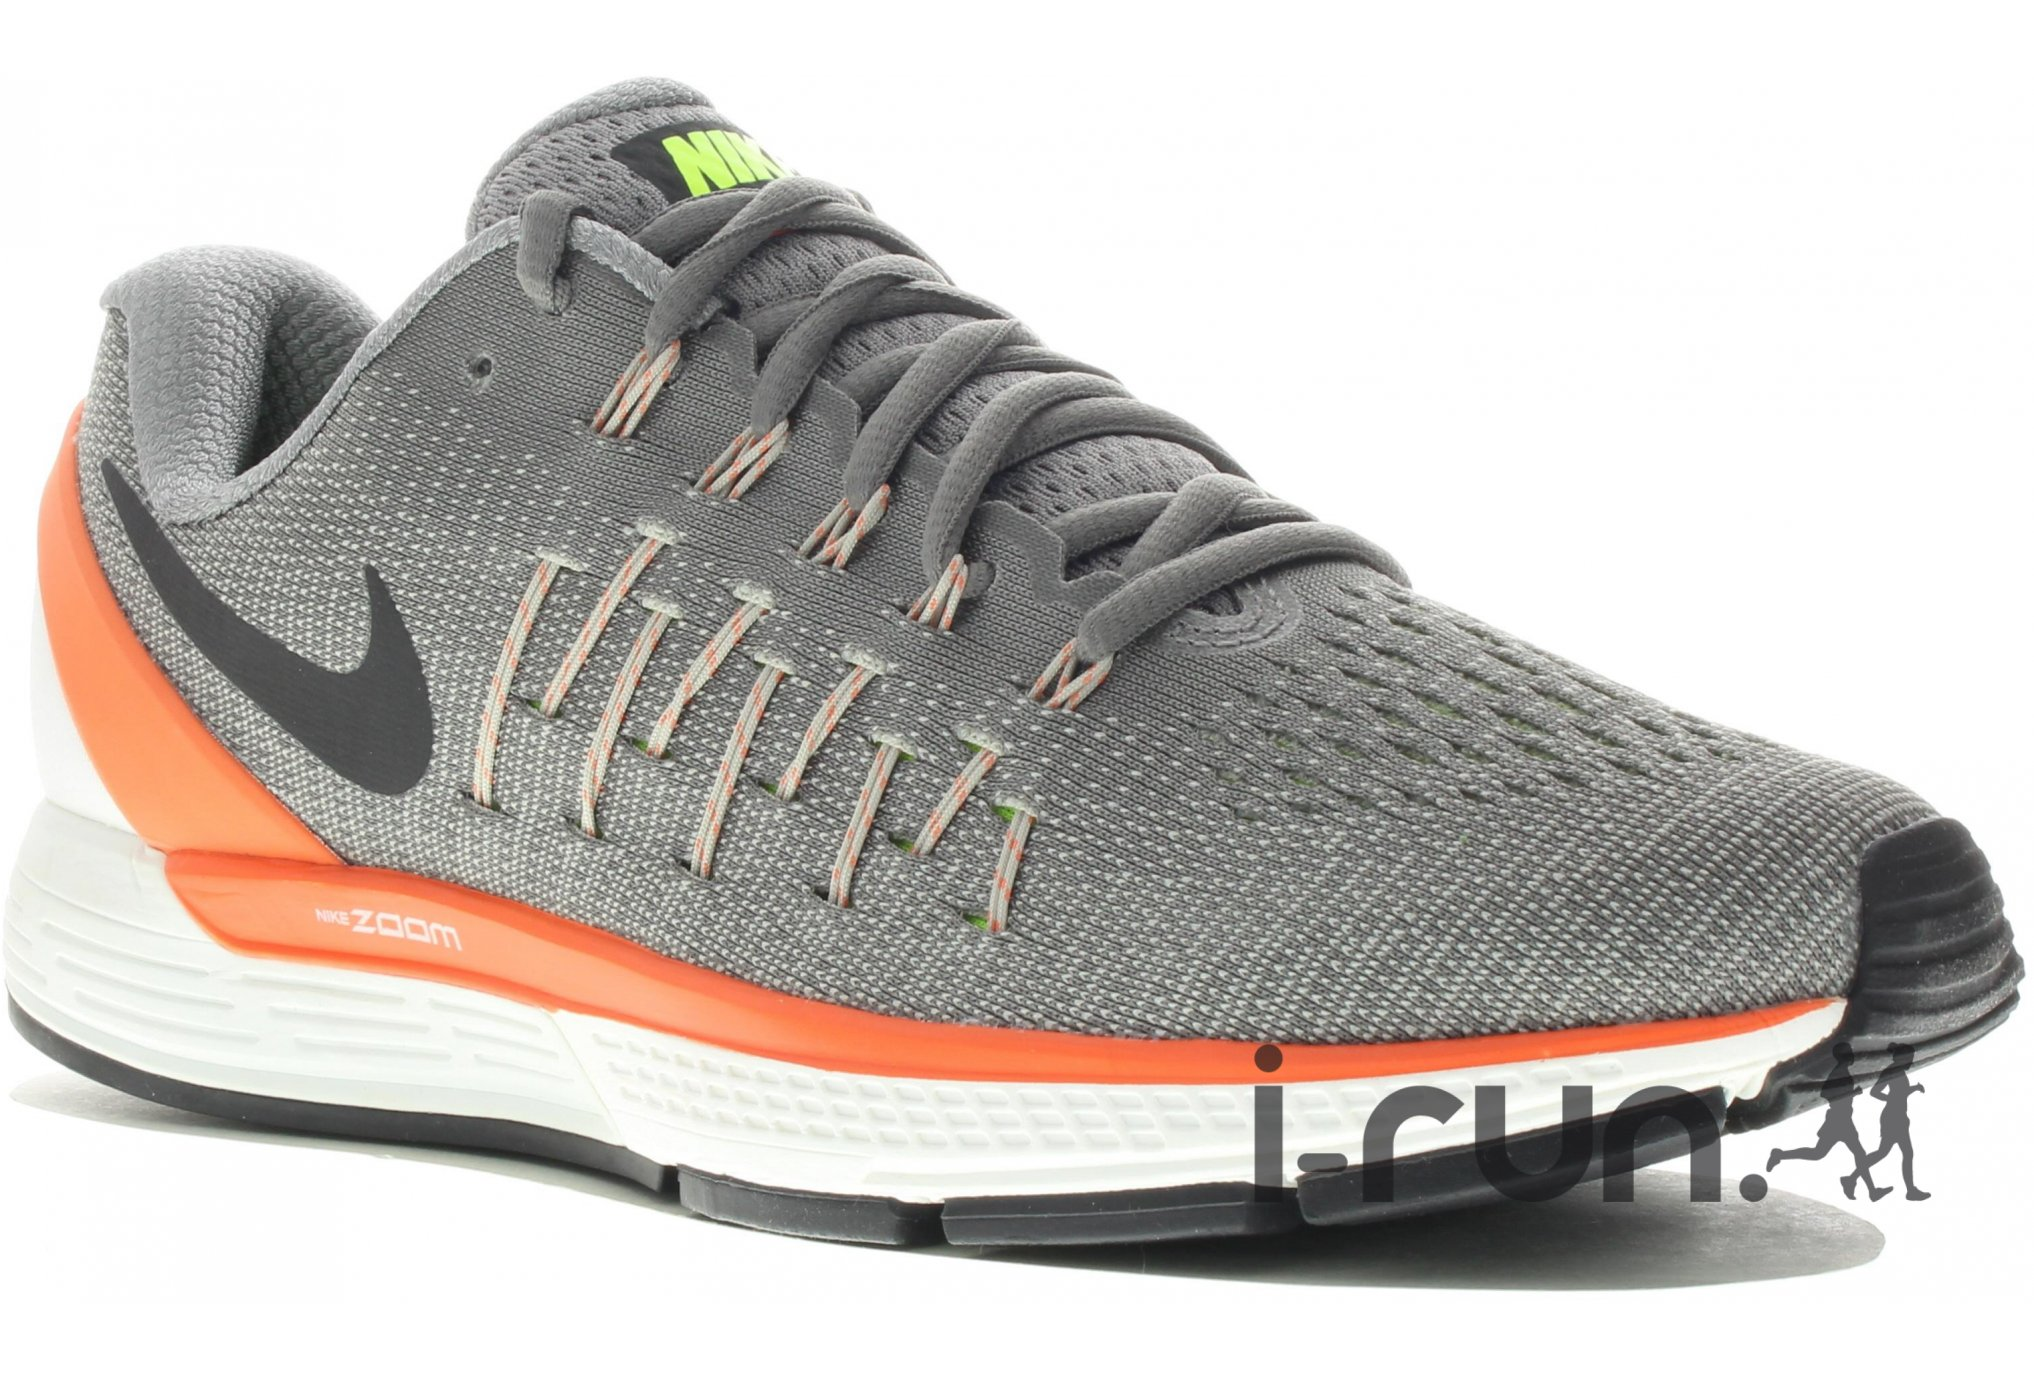 2Chaussures Odyssey R Nike Air Zoom De hCtsdQrx